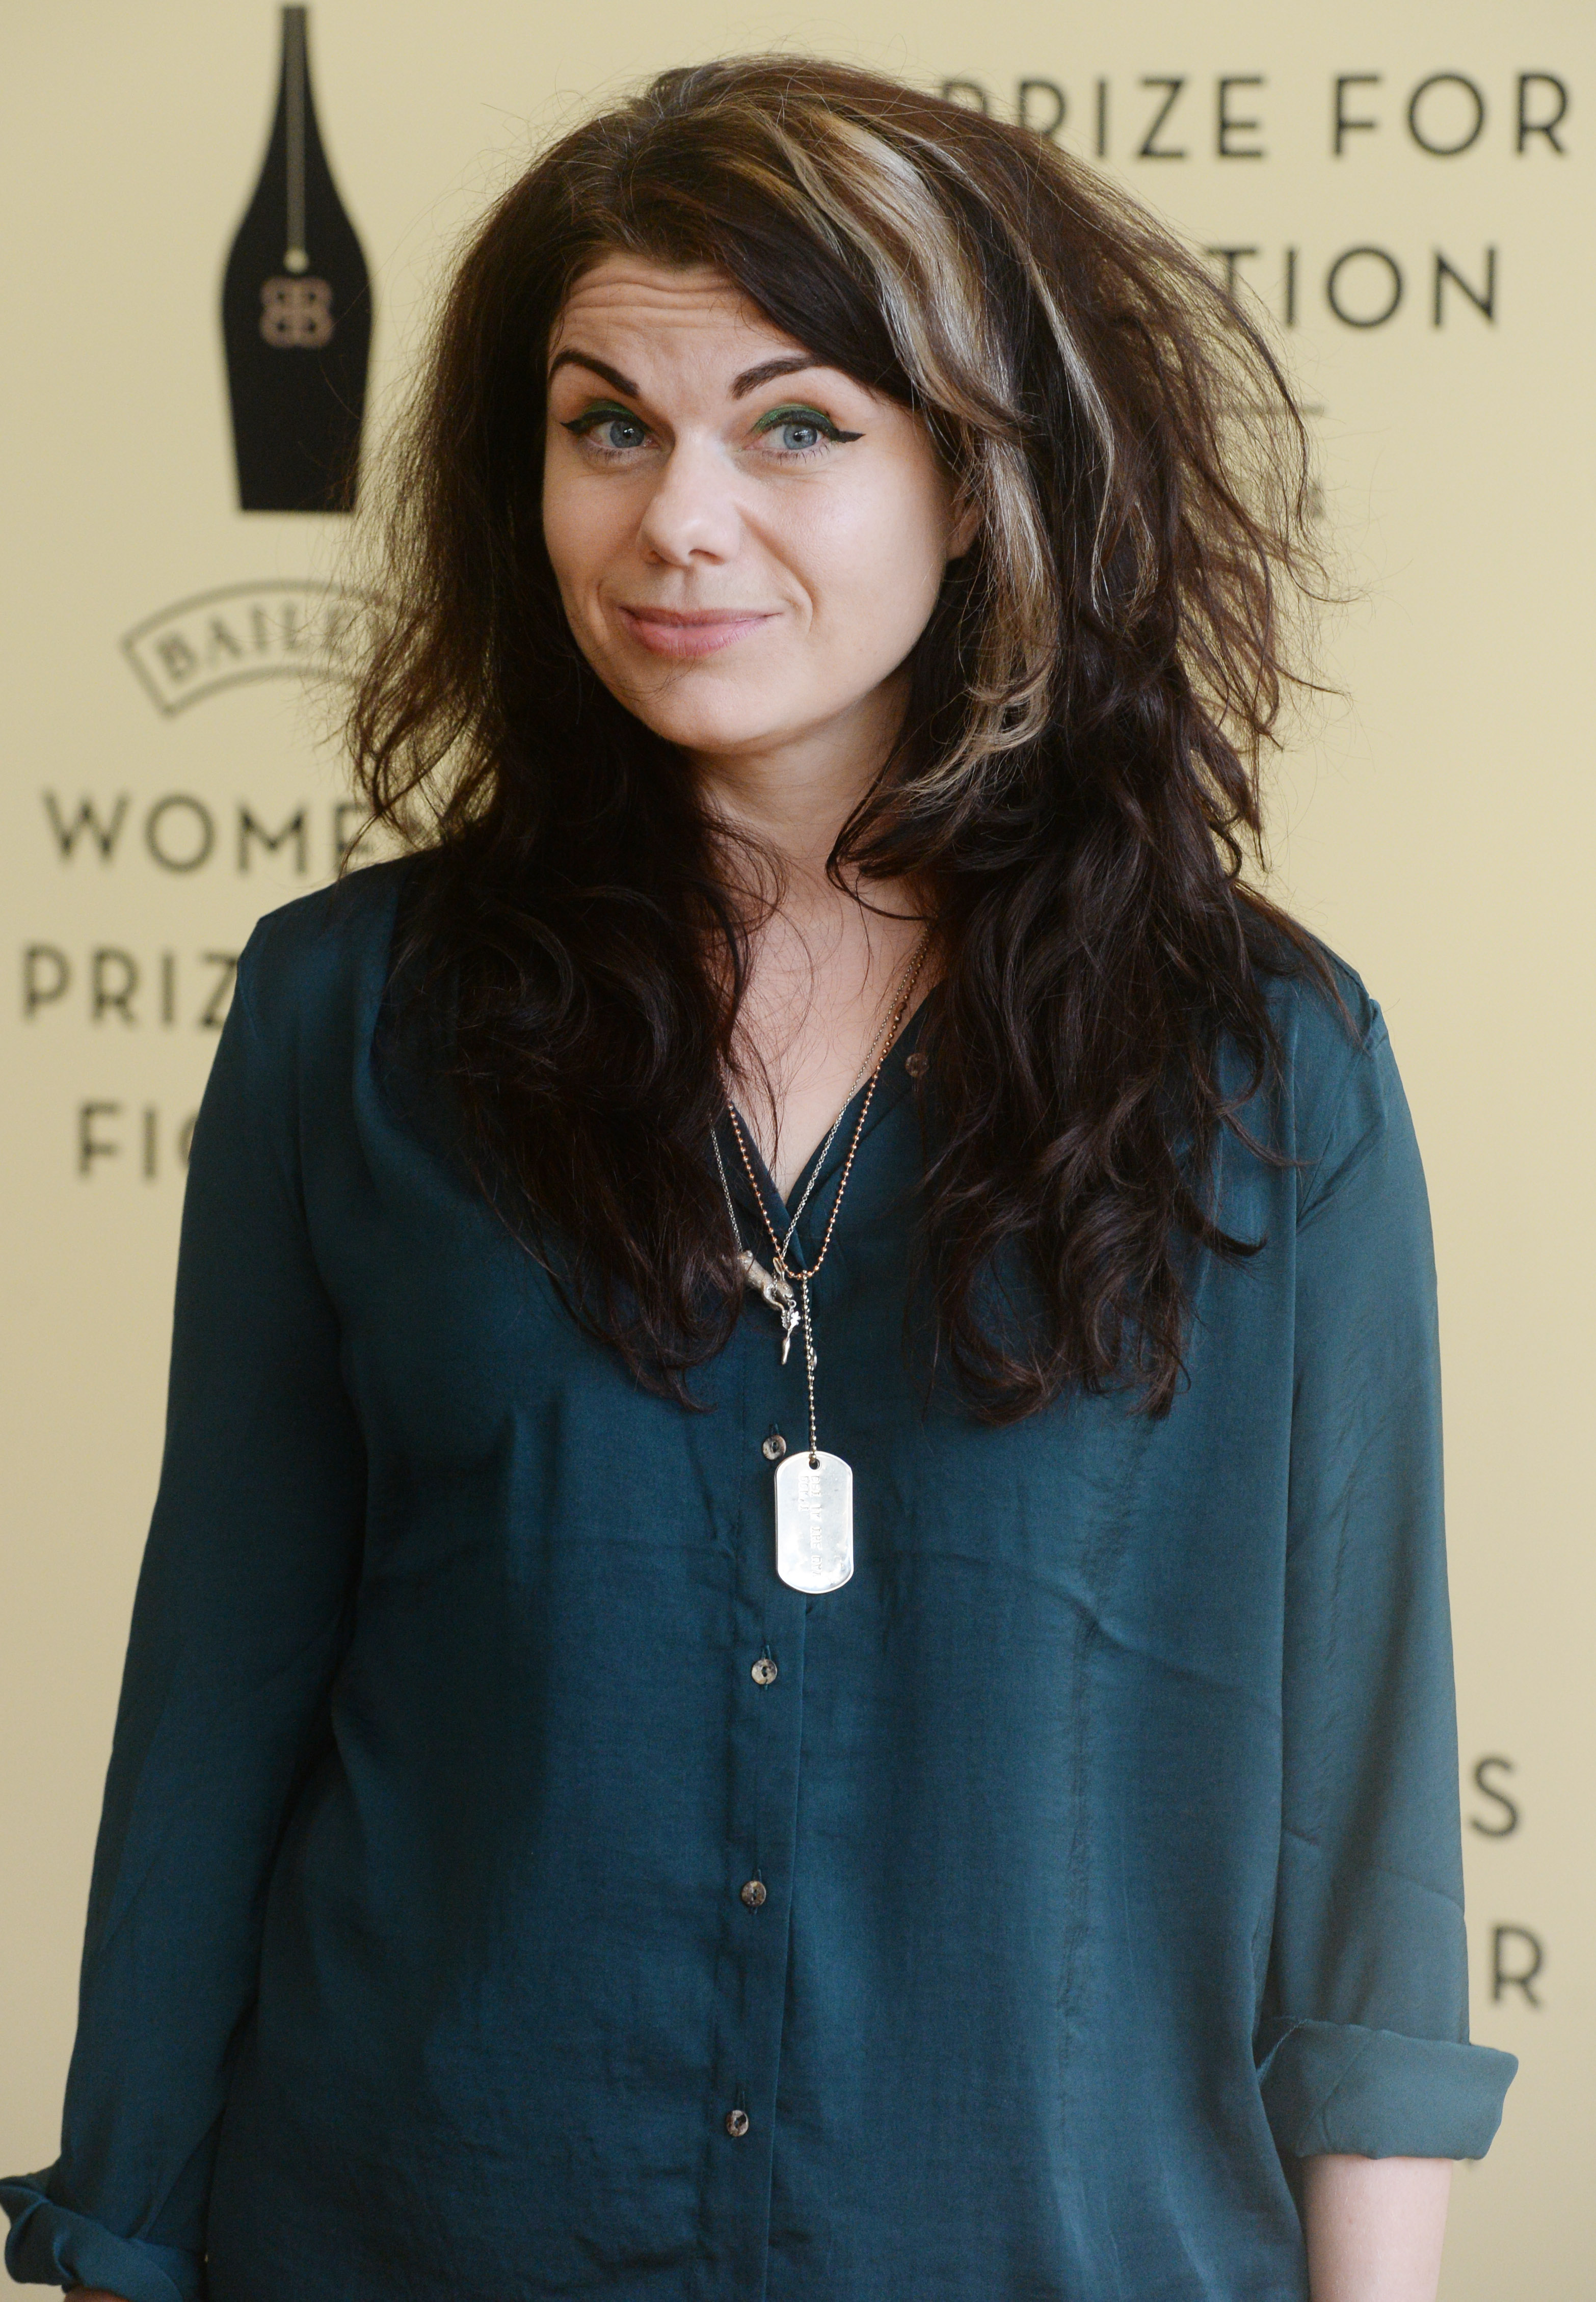 Caitlin Moran at the  Baileys Women's Prize For Fiction  at Royal Festival Hall in London on June 4, 2014.